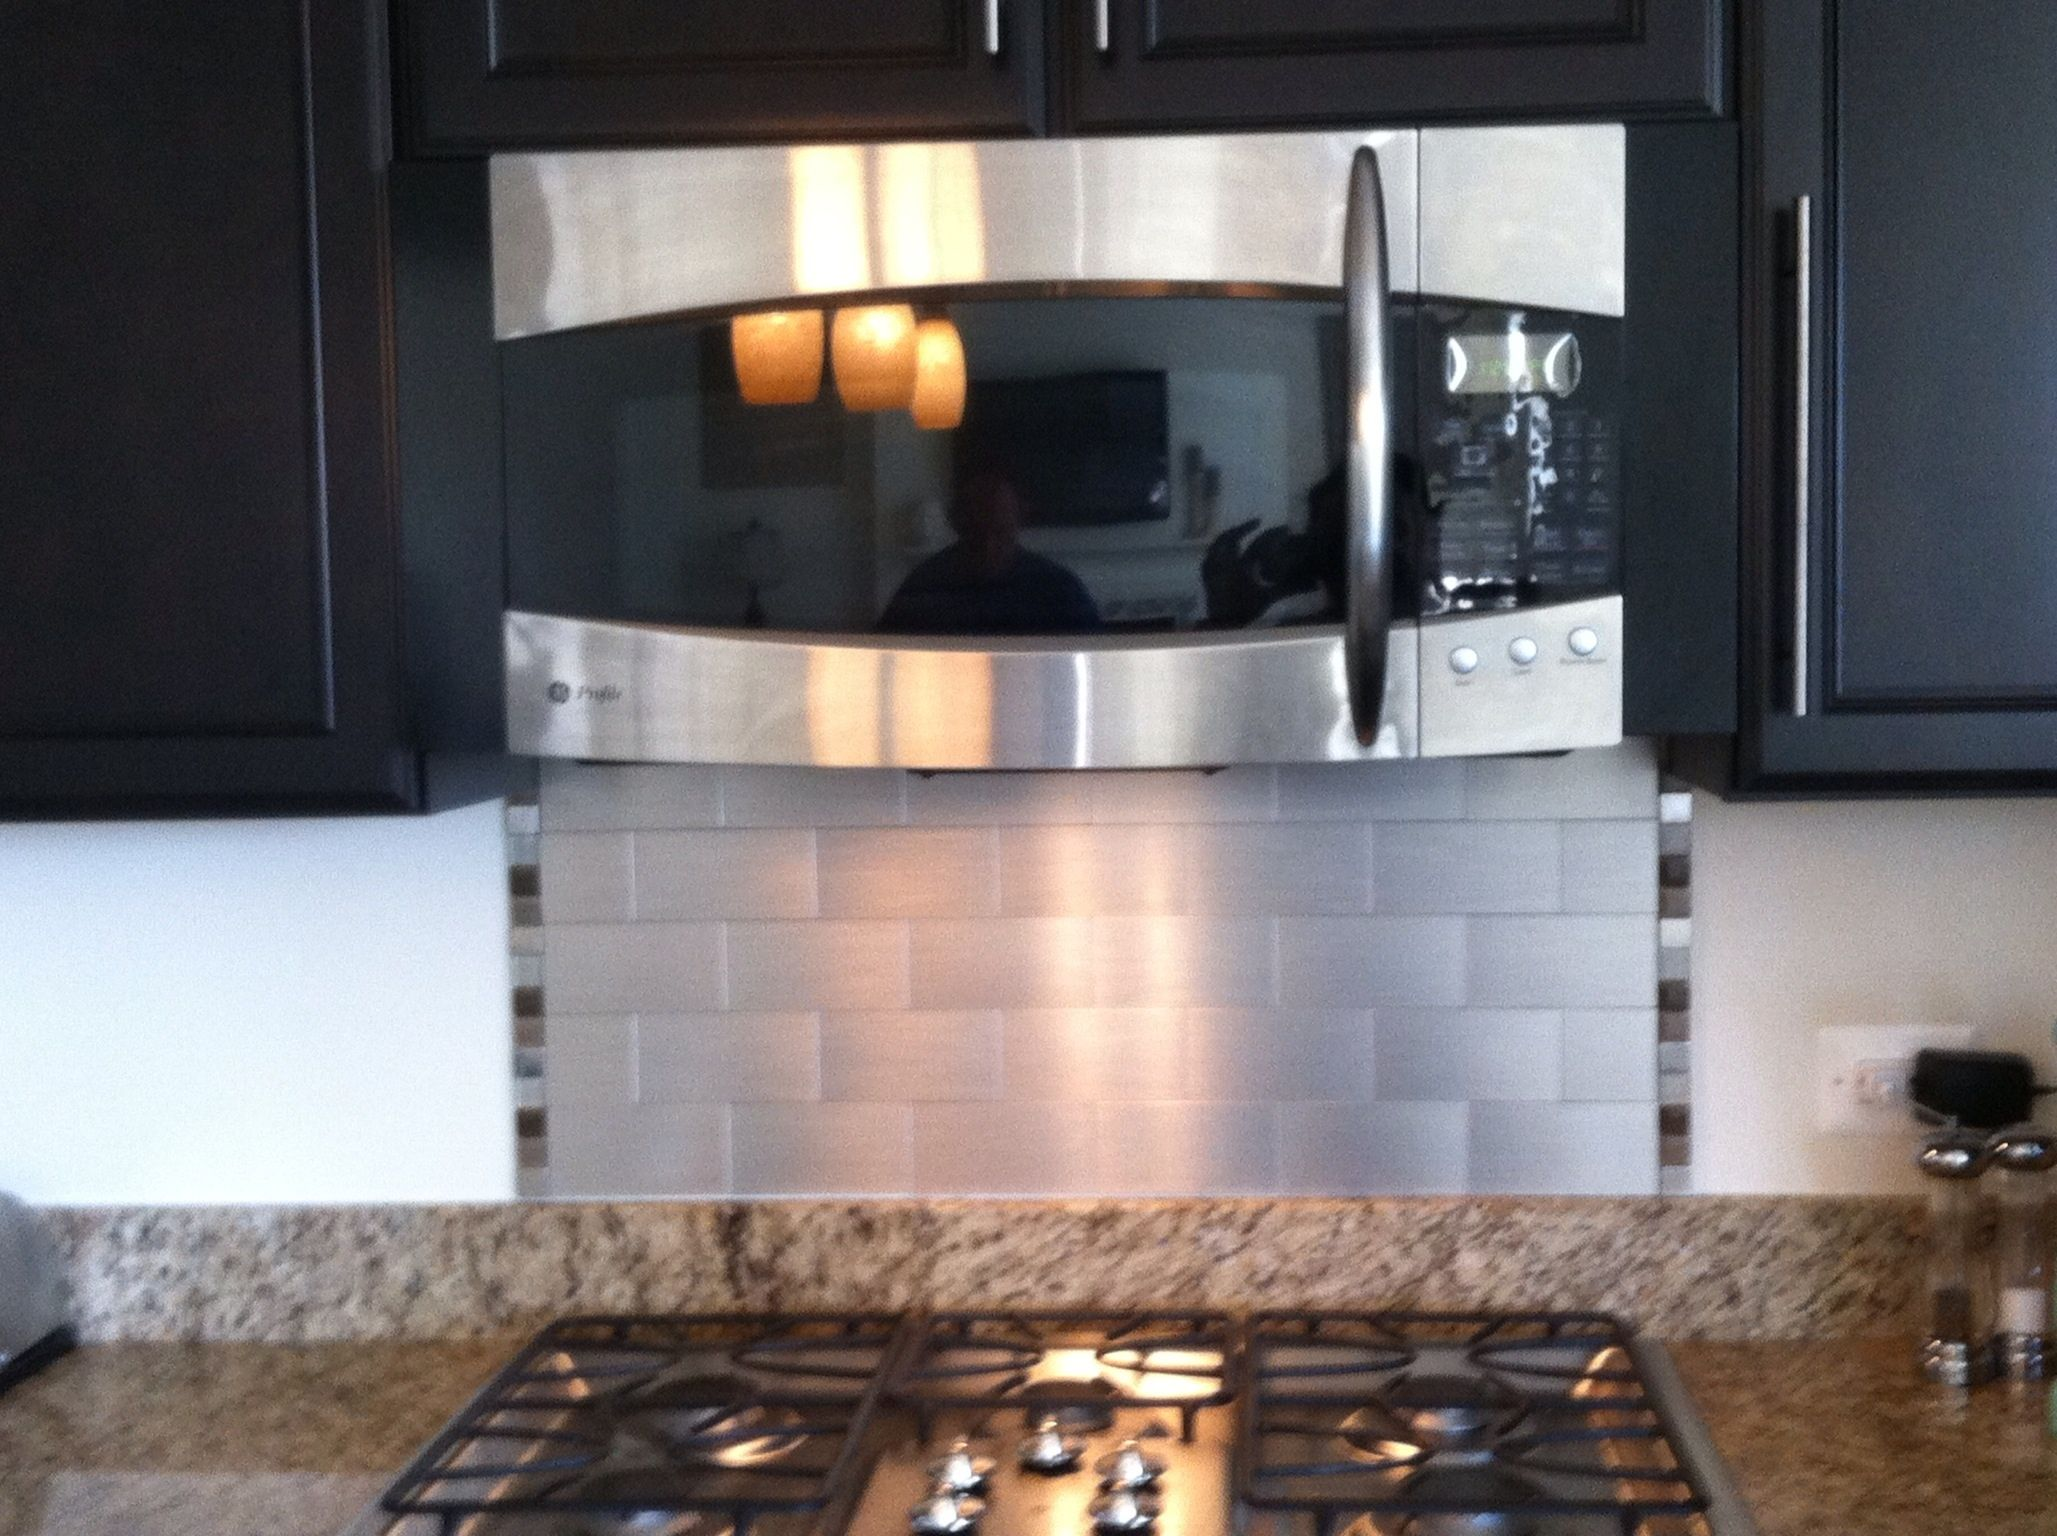 After! Simple and modern backsplash! A great DIY project on a budget.